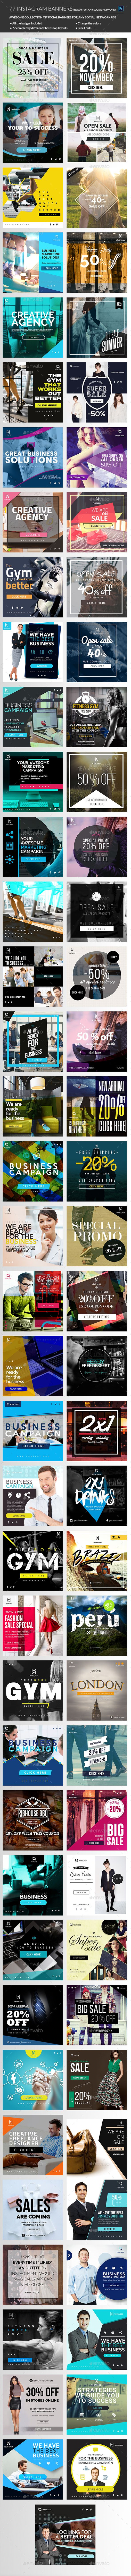 Instagram Promotional Banners - Over 70 Instagram banners for all promotions or event you would want to promote on Instagram.